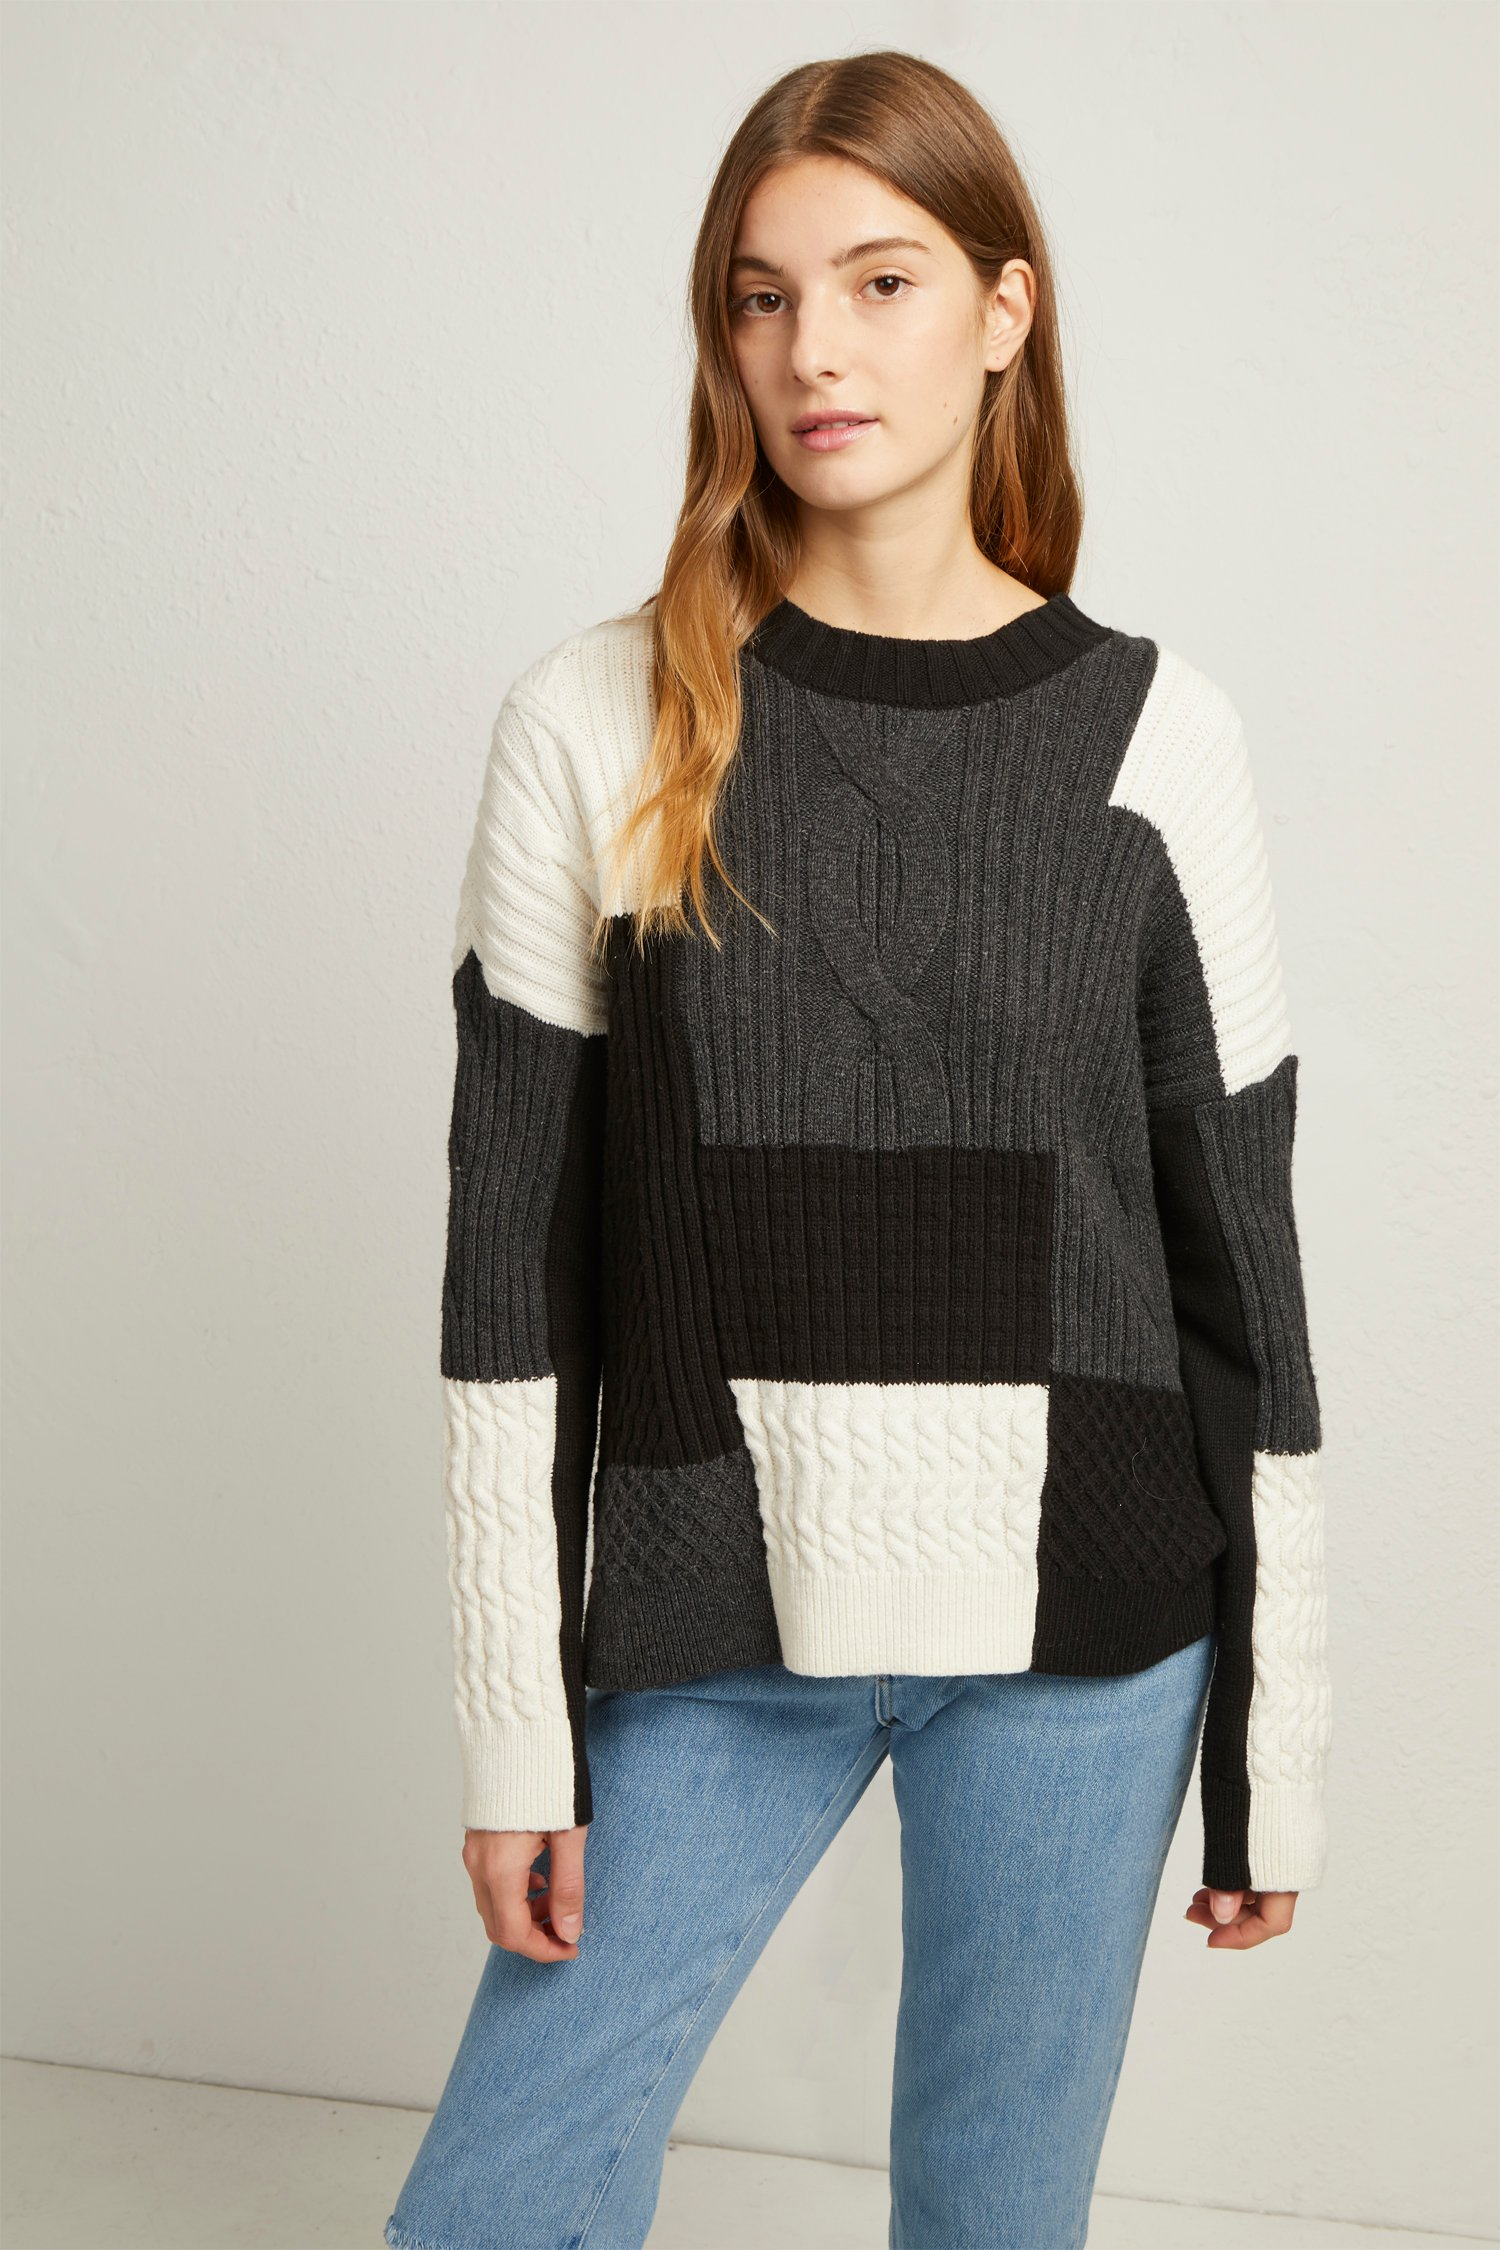 Amie Patch Knits Cable Jumper by French Connection